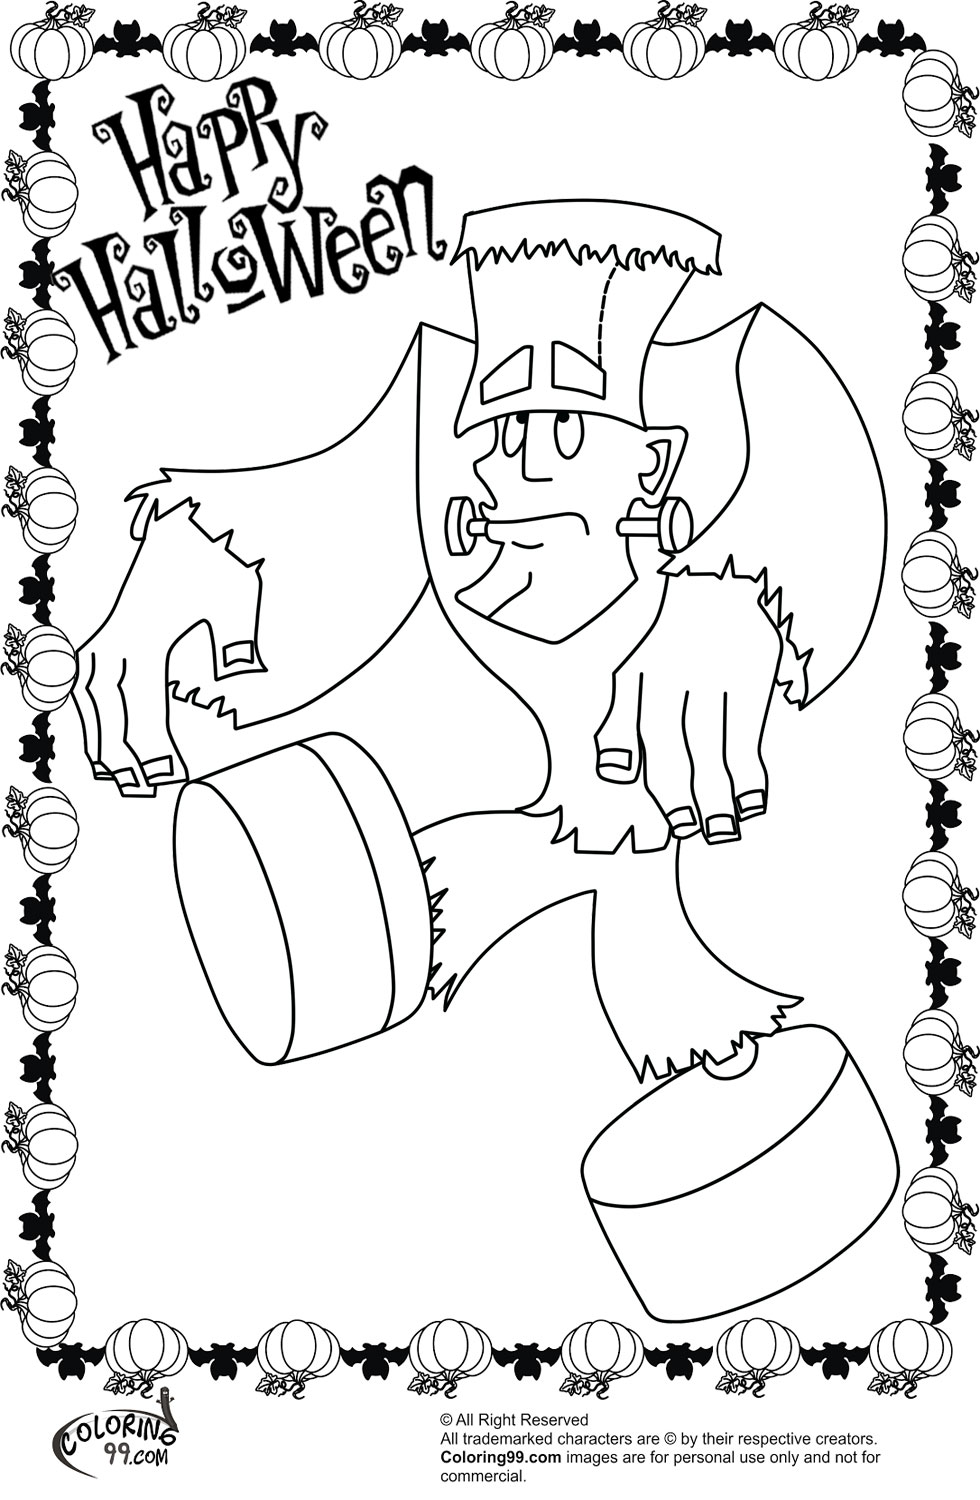 Frankenstein halloween coloring pages team colors for Frankenstein coloring book pages